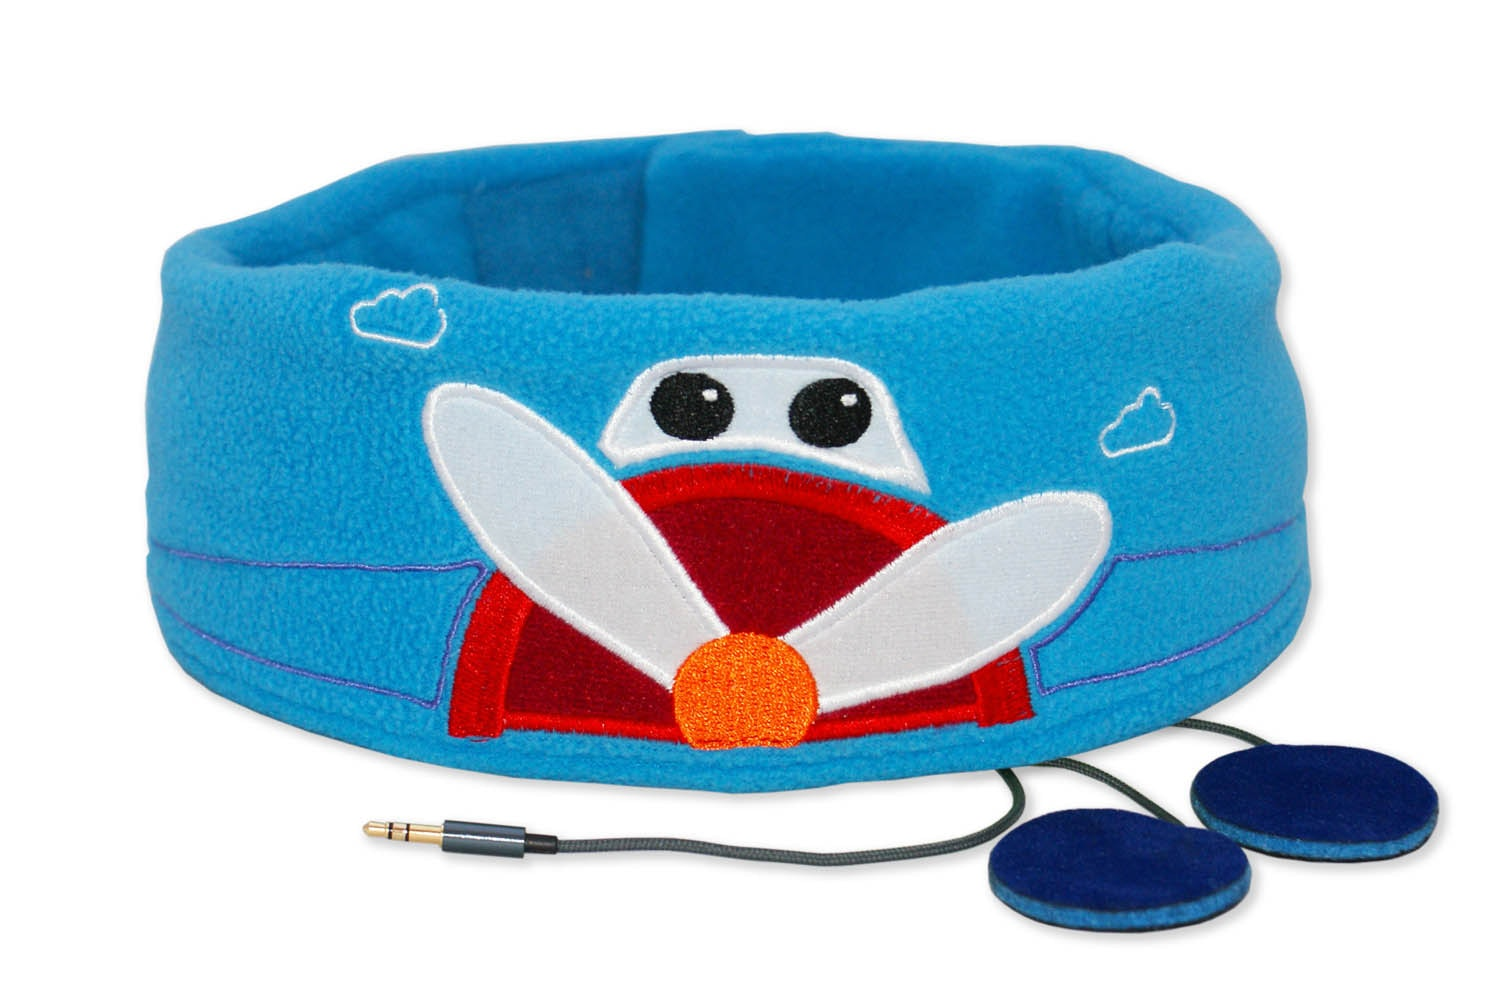 Snuggly Rascals Kids Headphones | Plane